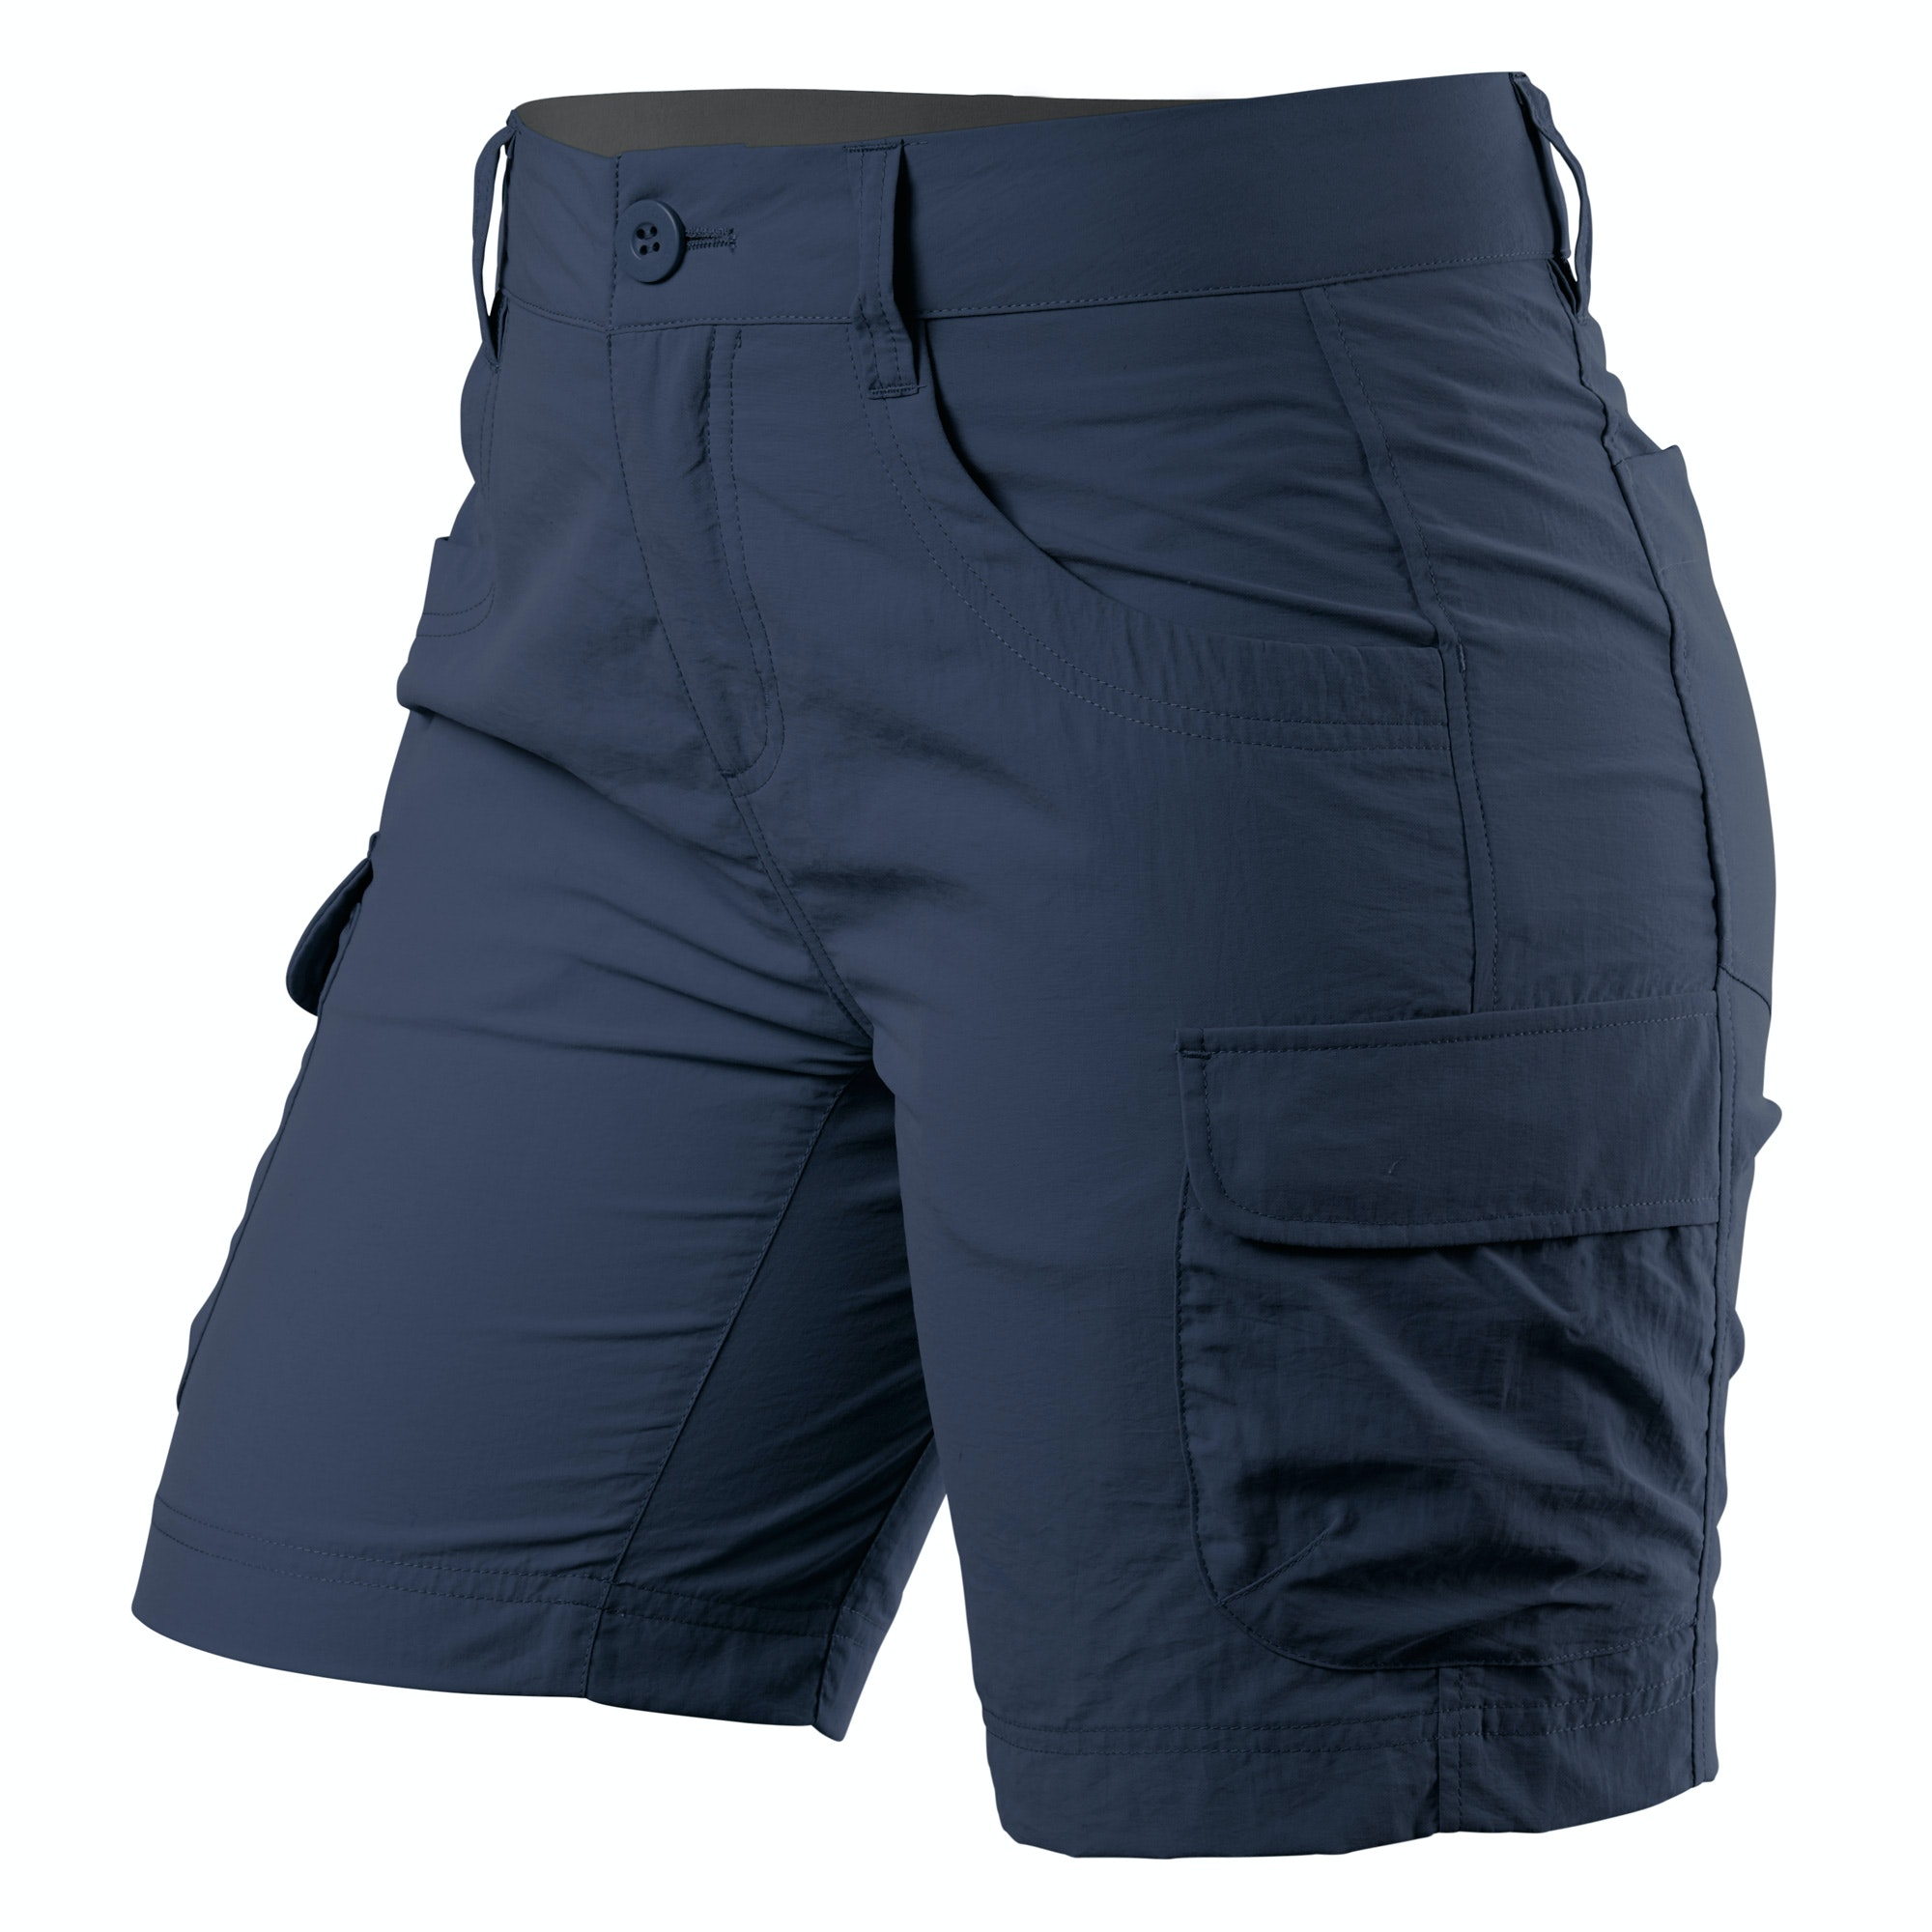 Our men's hiking shorts are comfortable, flexible, and lightweight. Geared for the outdoors, they equip you for whatever conditions may come your way, like unrelenting sun or an unexpected swim. Find the right length for you-we offer shorts with 7